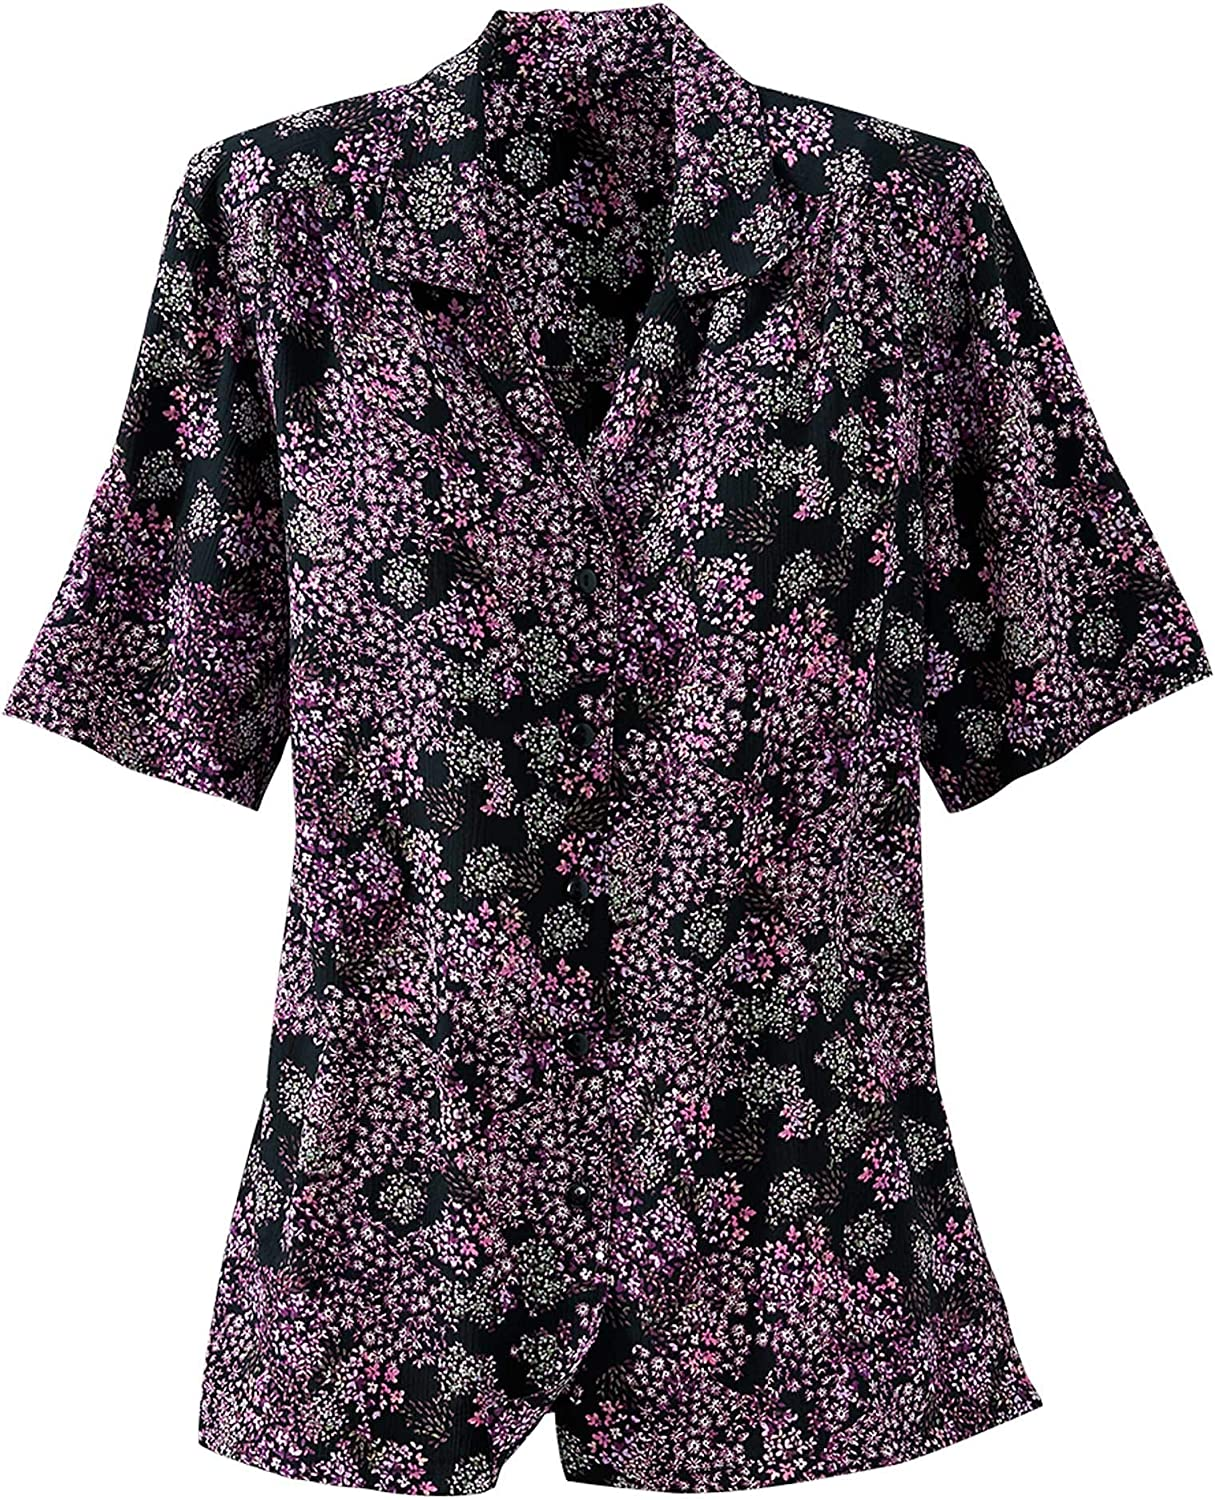 Petites Donnkenny by National - Printed Camp Shirt - No-Iron Wrinkle-Resistant, Button-Front, Shoulder Pads